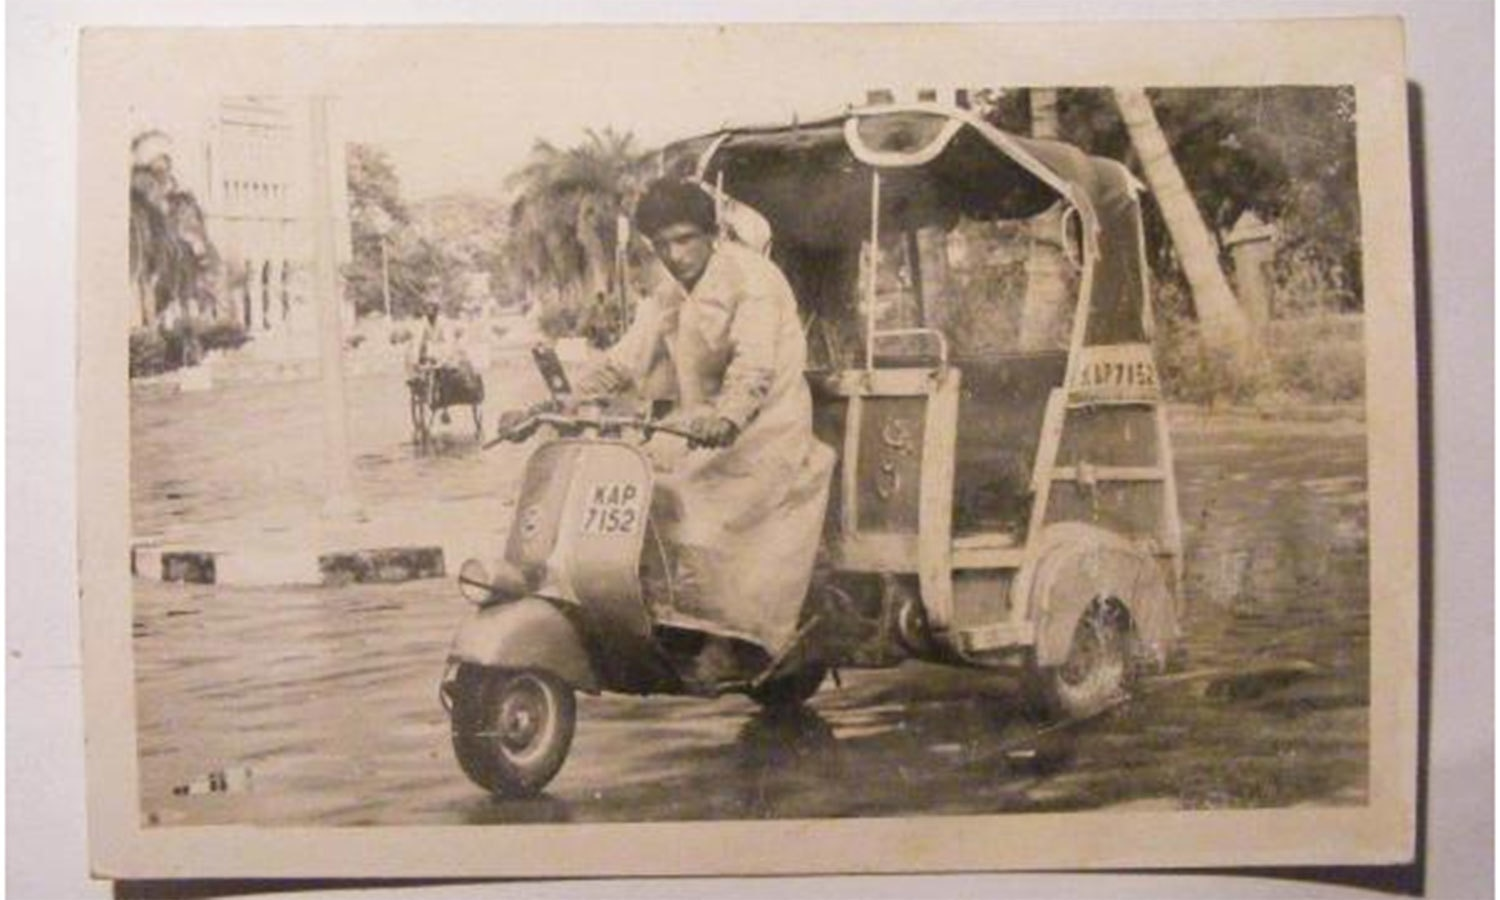 A Rickshaw driver on Frere Road heading towards the Clifton Beach in 1965 after that year's heavy monsoon downpours and a tidal wave which hit Karachi's coastline.